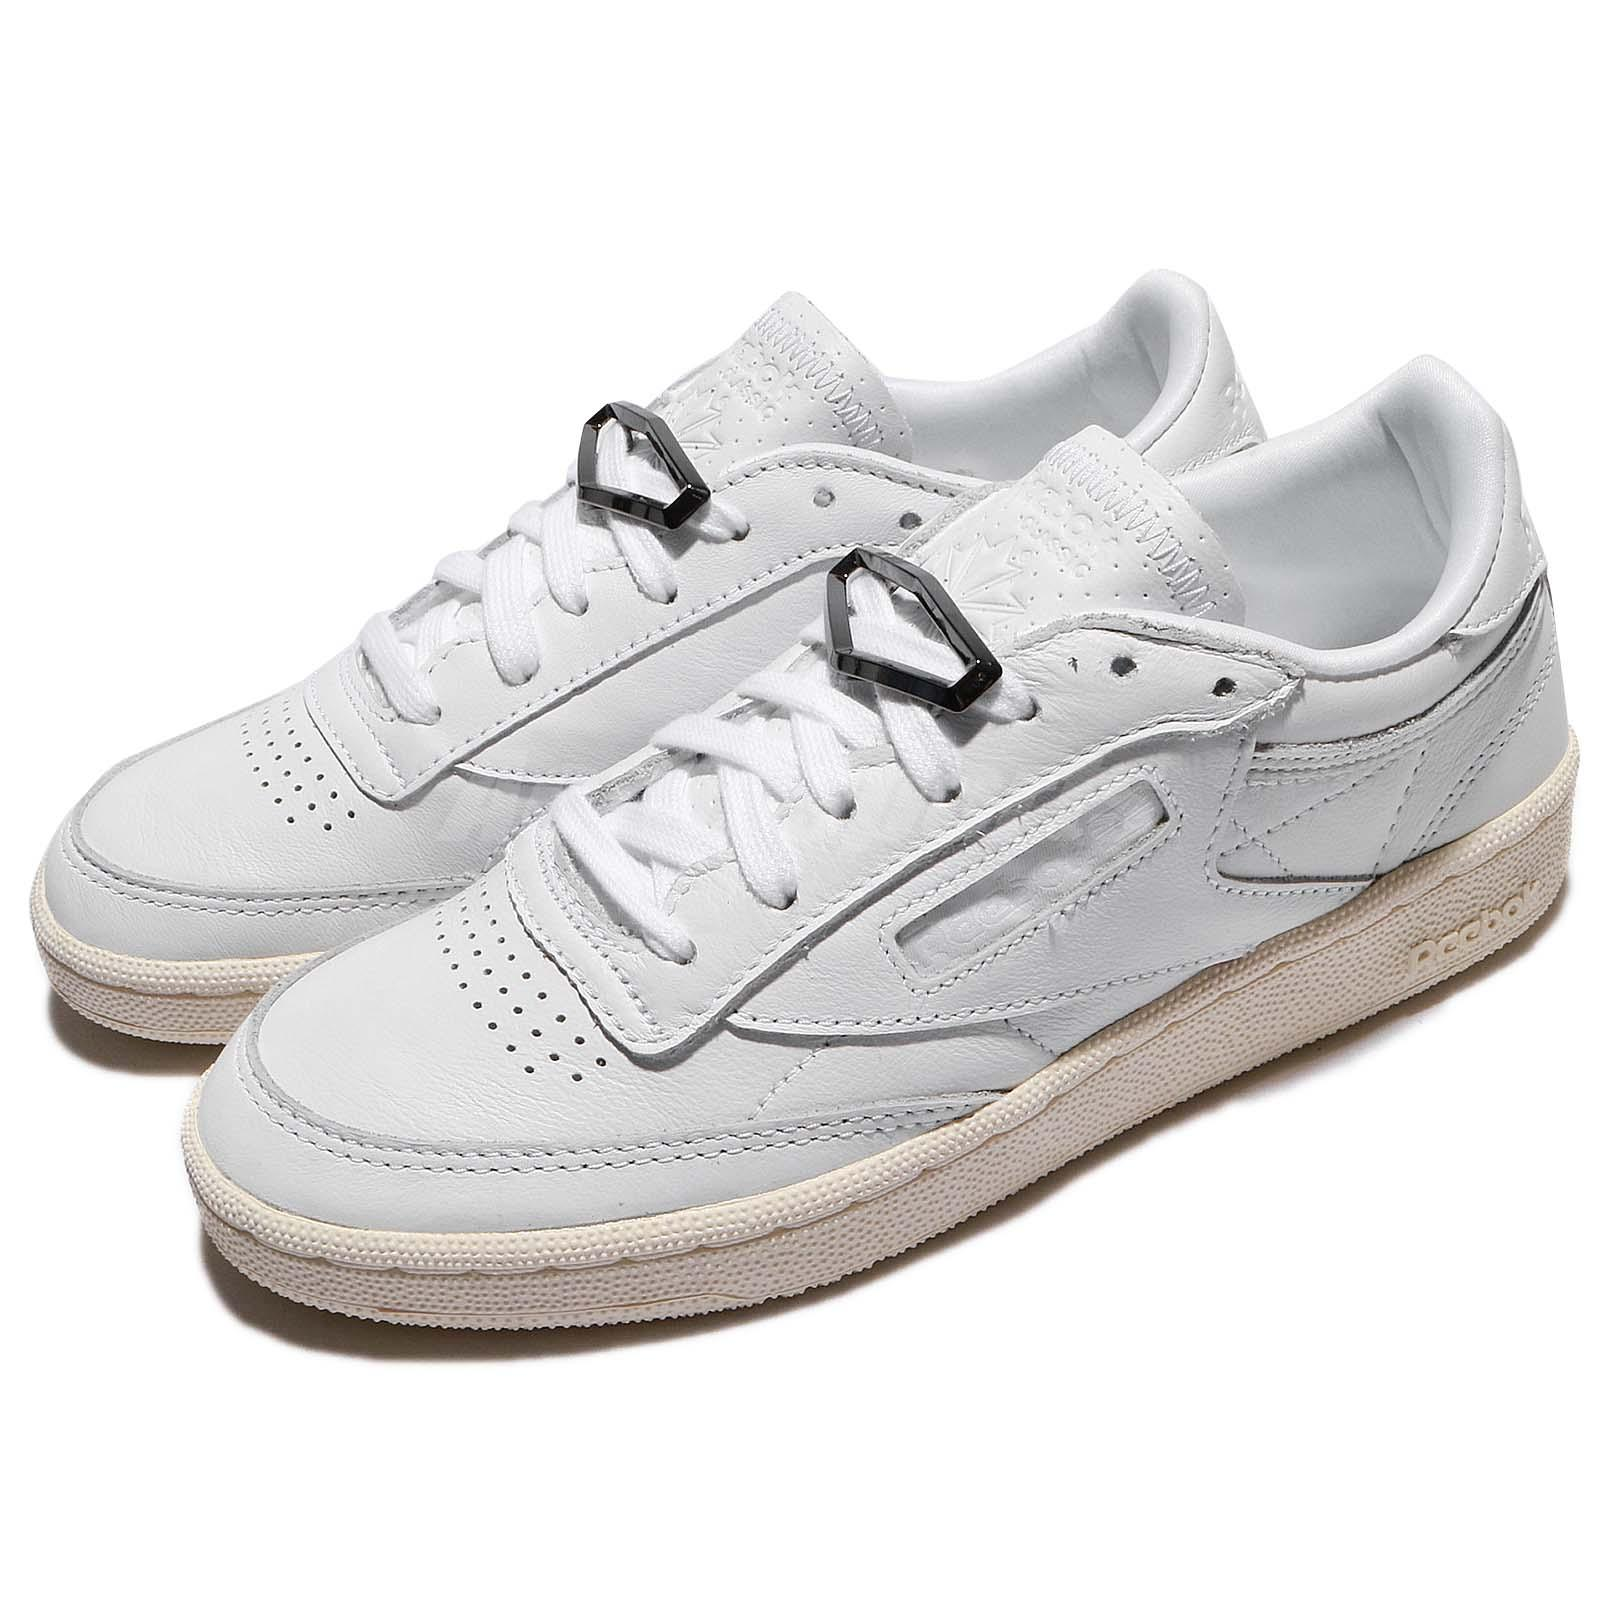 c19f33b3 Details about Reebok Club C 85 Hardware White Chalk Women Shoes Sneakers  Trainers BS9595